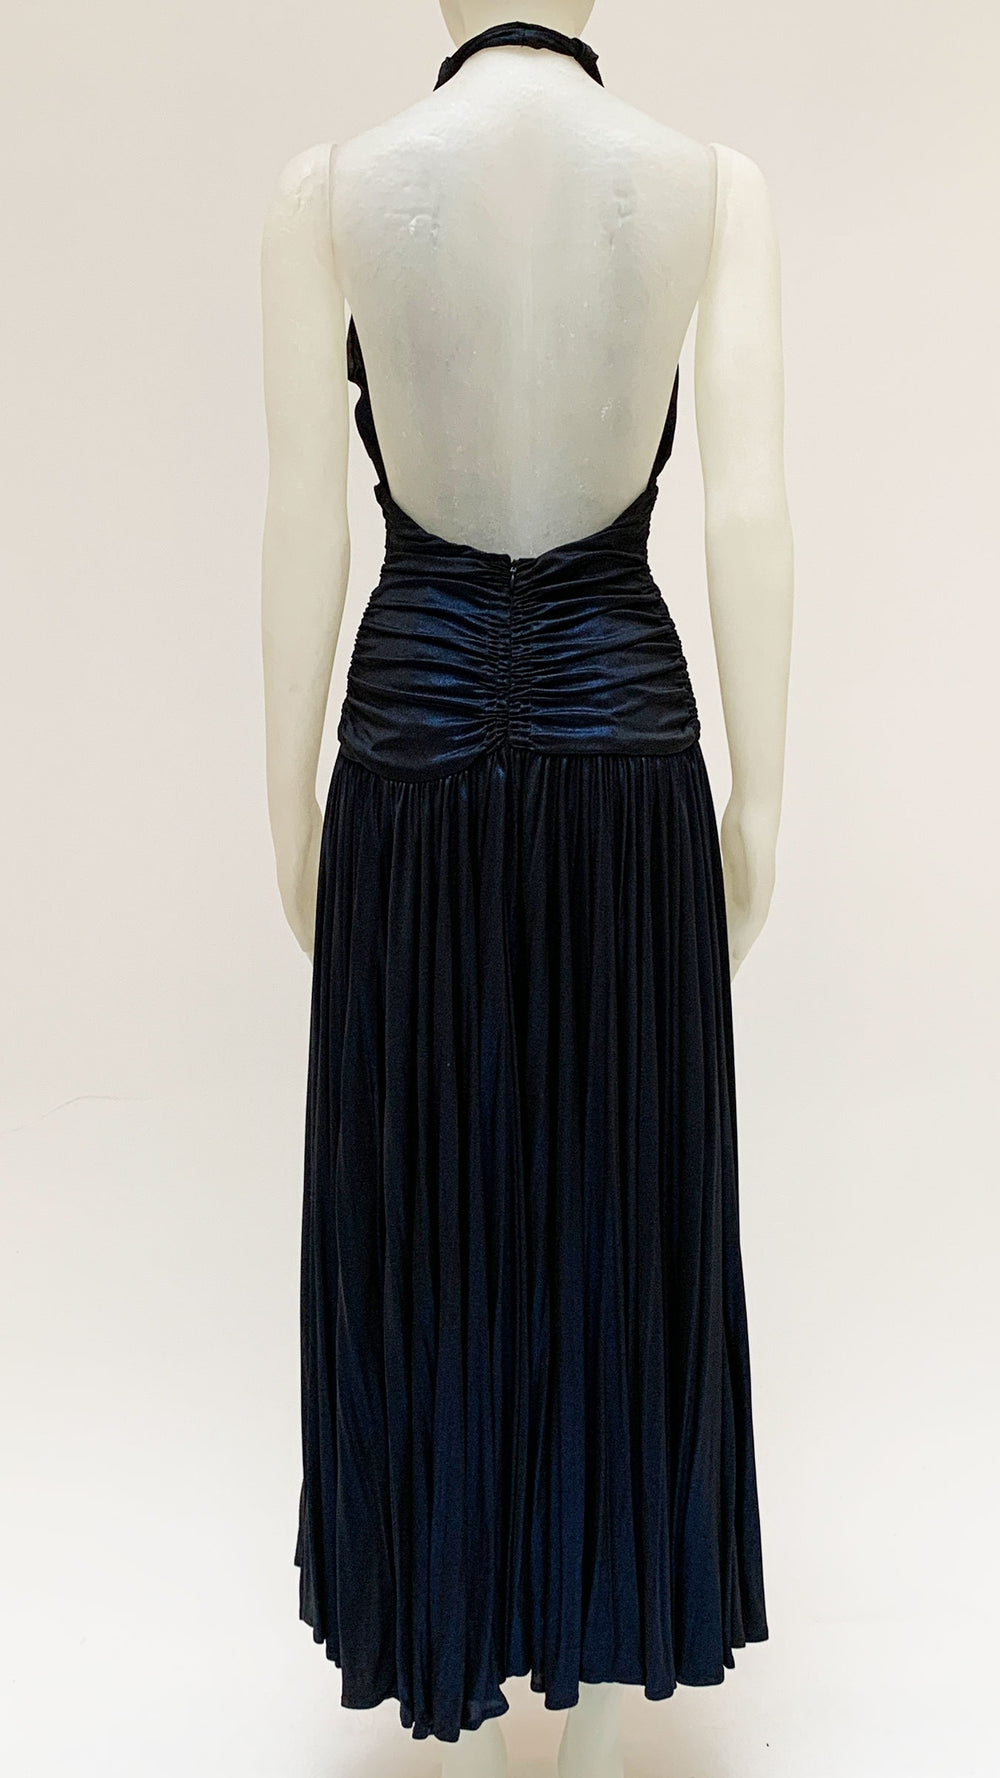 HALTER BILL PLEATED GOWN - 2